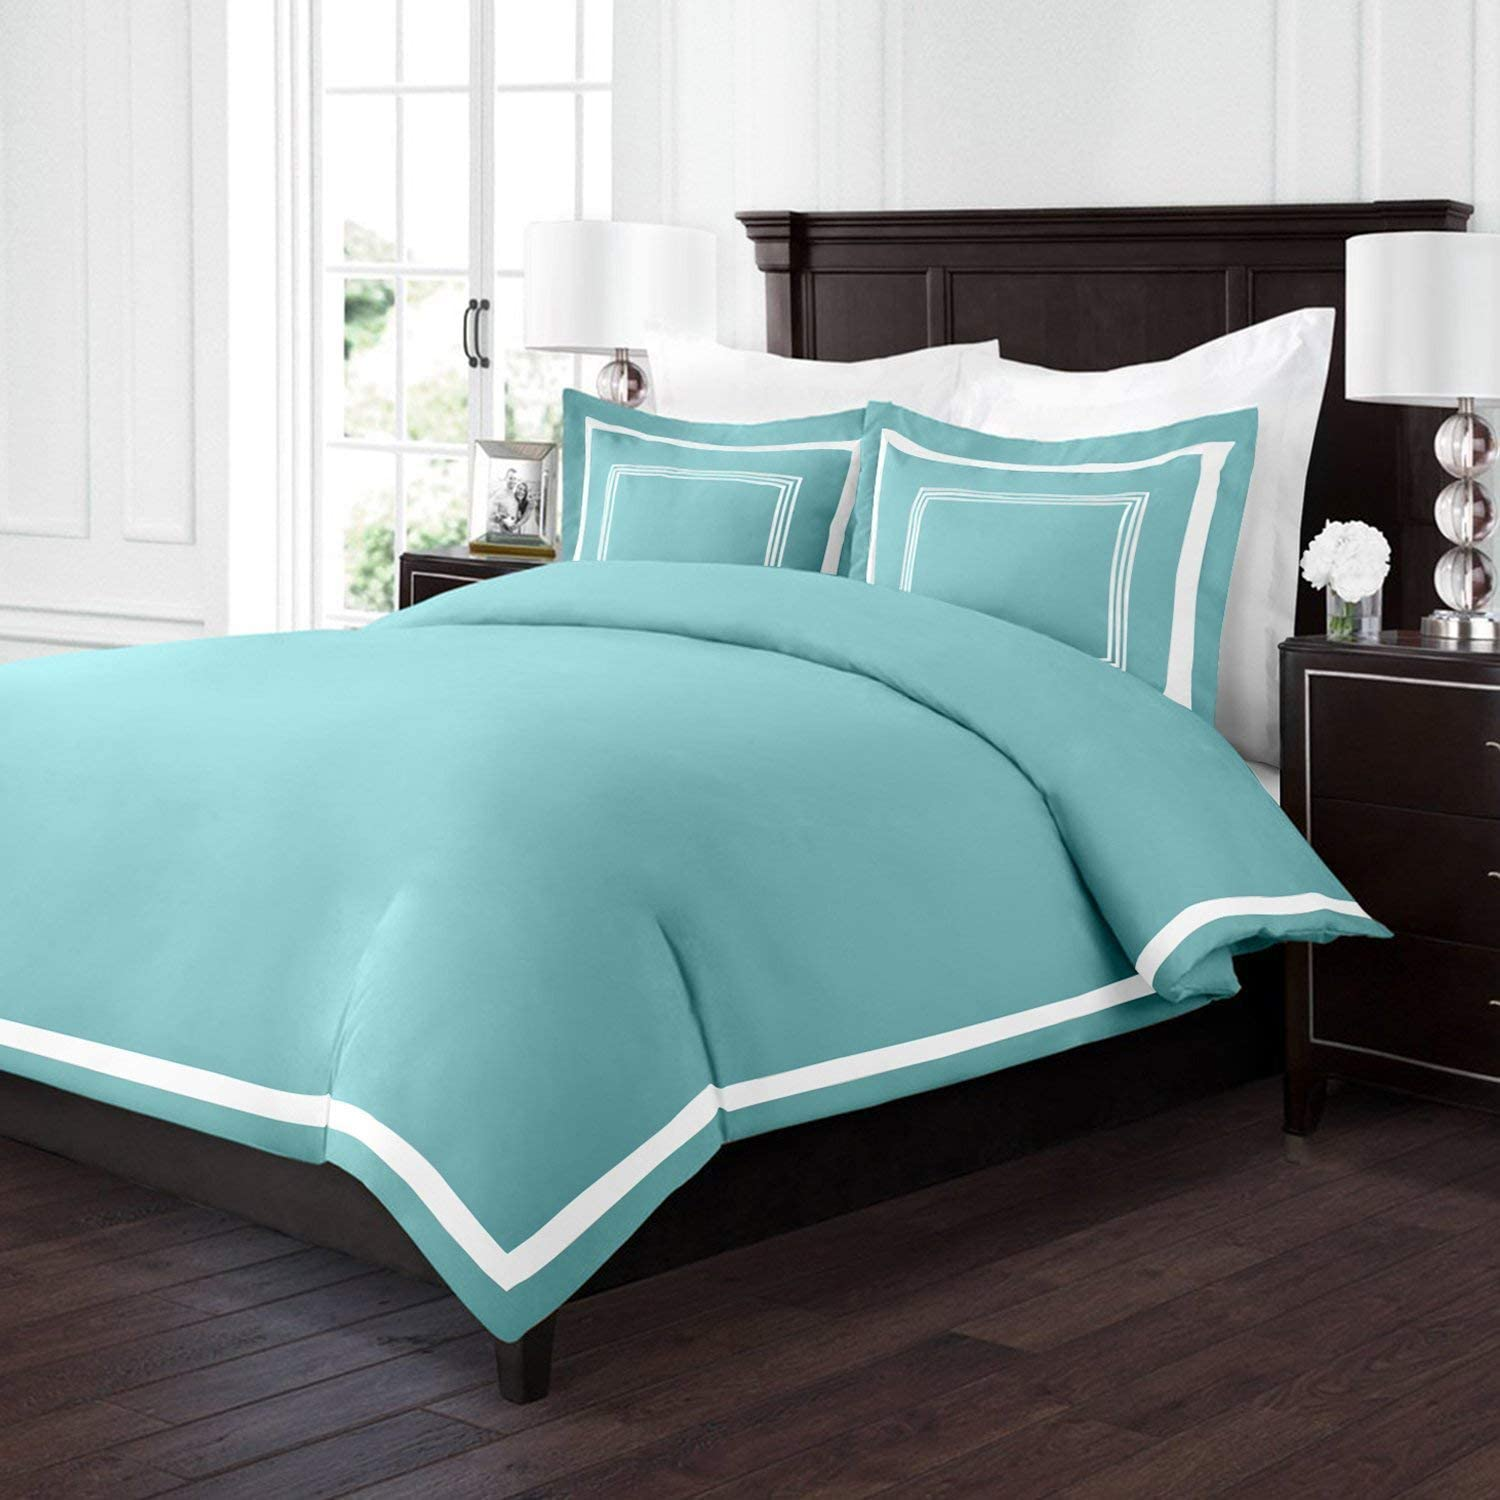 Sleep Restoration Luxury Soft Brushed Embroidered Microfiber Duvet Cover Set With Beautiful Trim Embroidery Details Hypoallergenic Full Queen Aqua White Home Kitchen Amazon Com